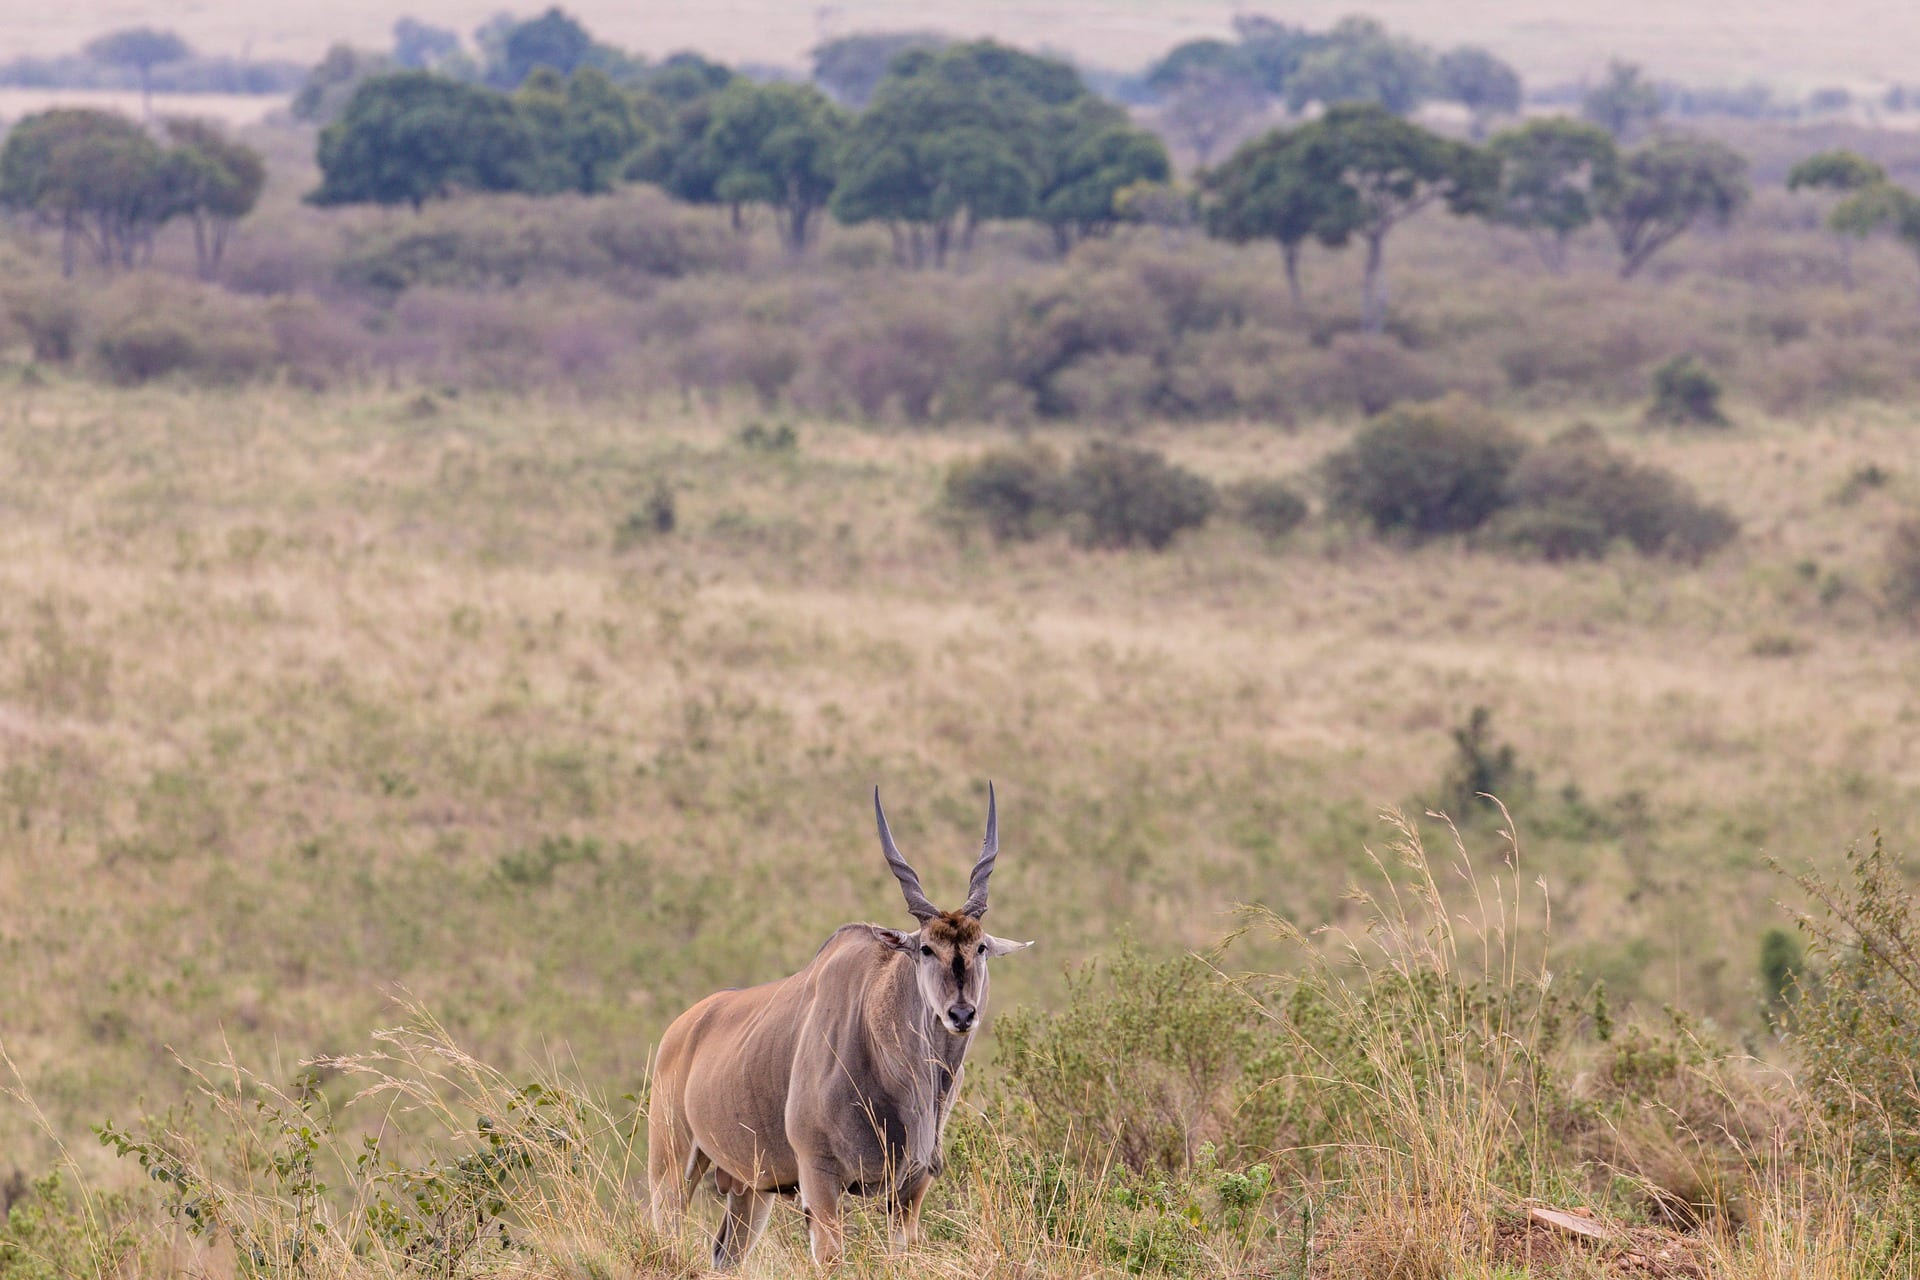 An Eland stands in a field in Africa